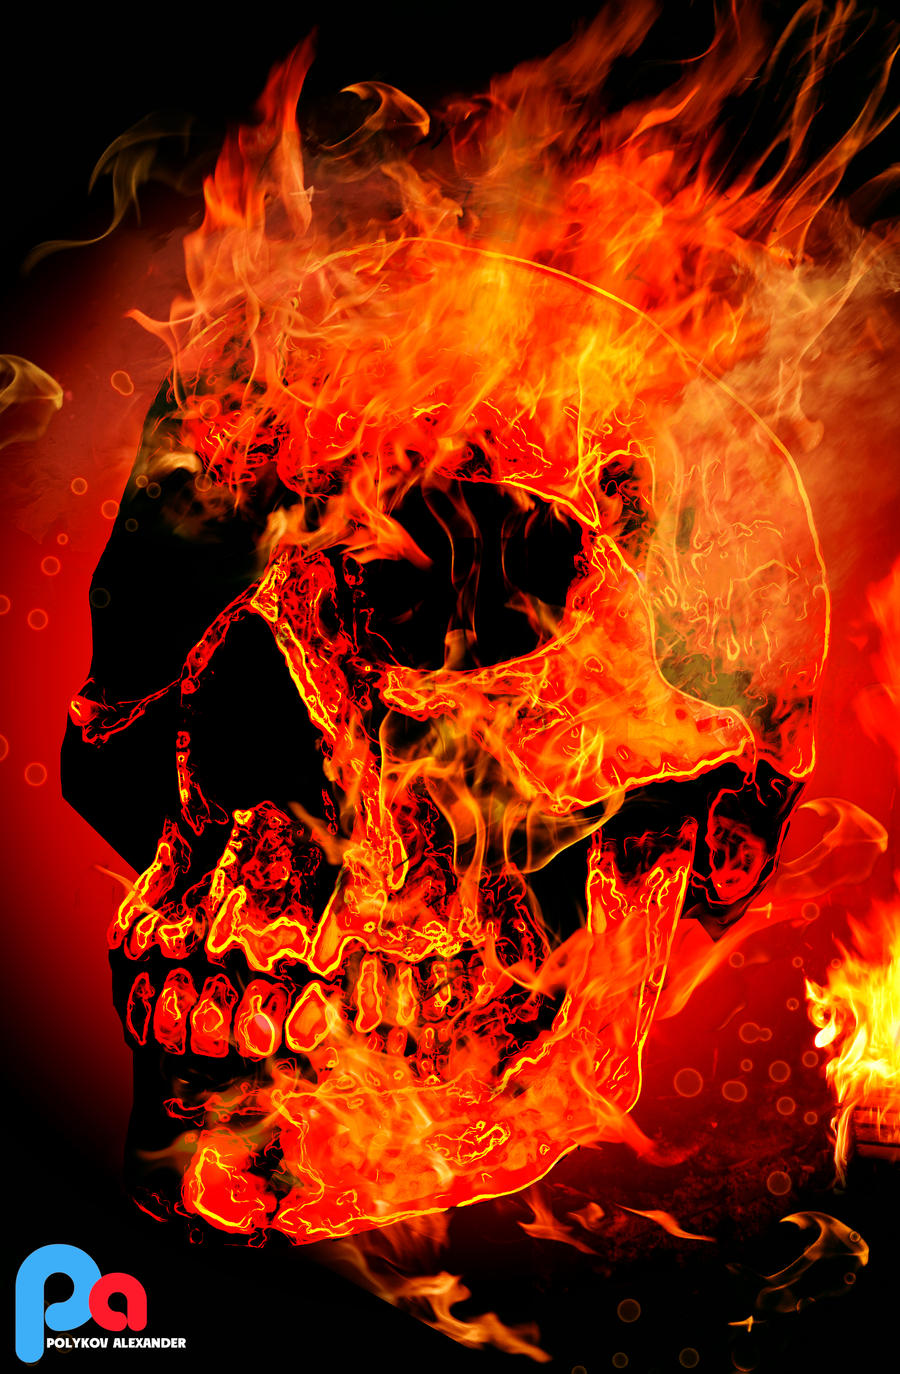 Create a skull on fire in photoshop by volshebnik 4arodey on deviantart create a skull on fire in photoshop by volshebnik 4arodey voltagebd Choice Image